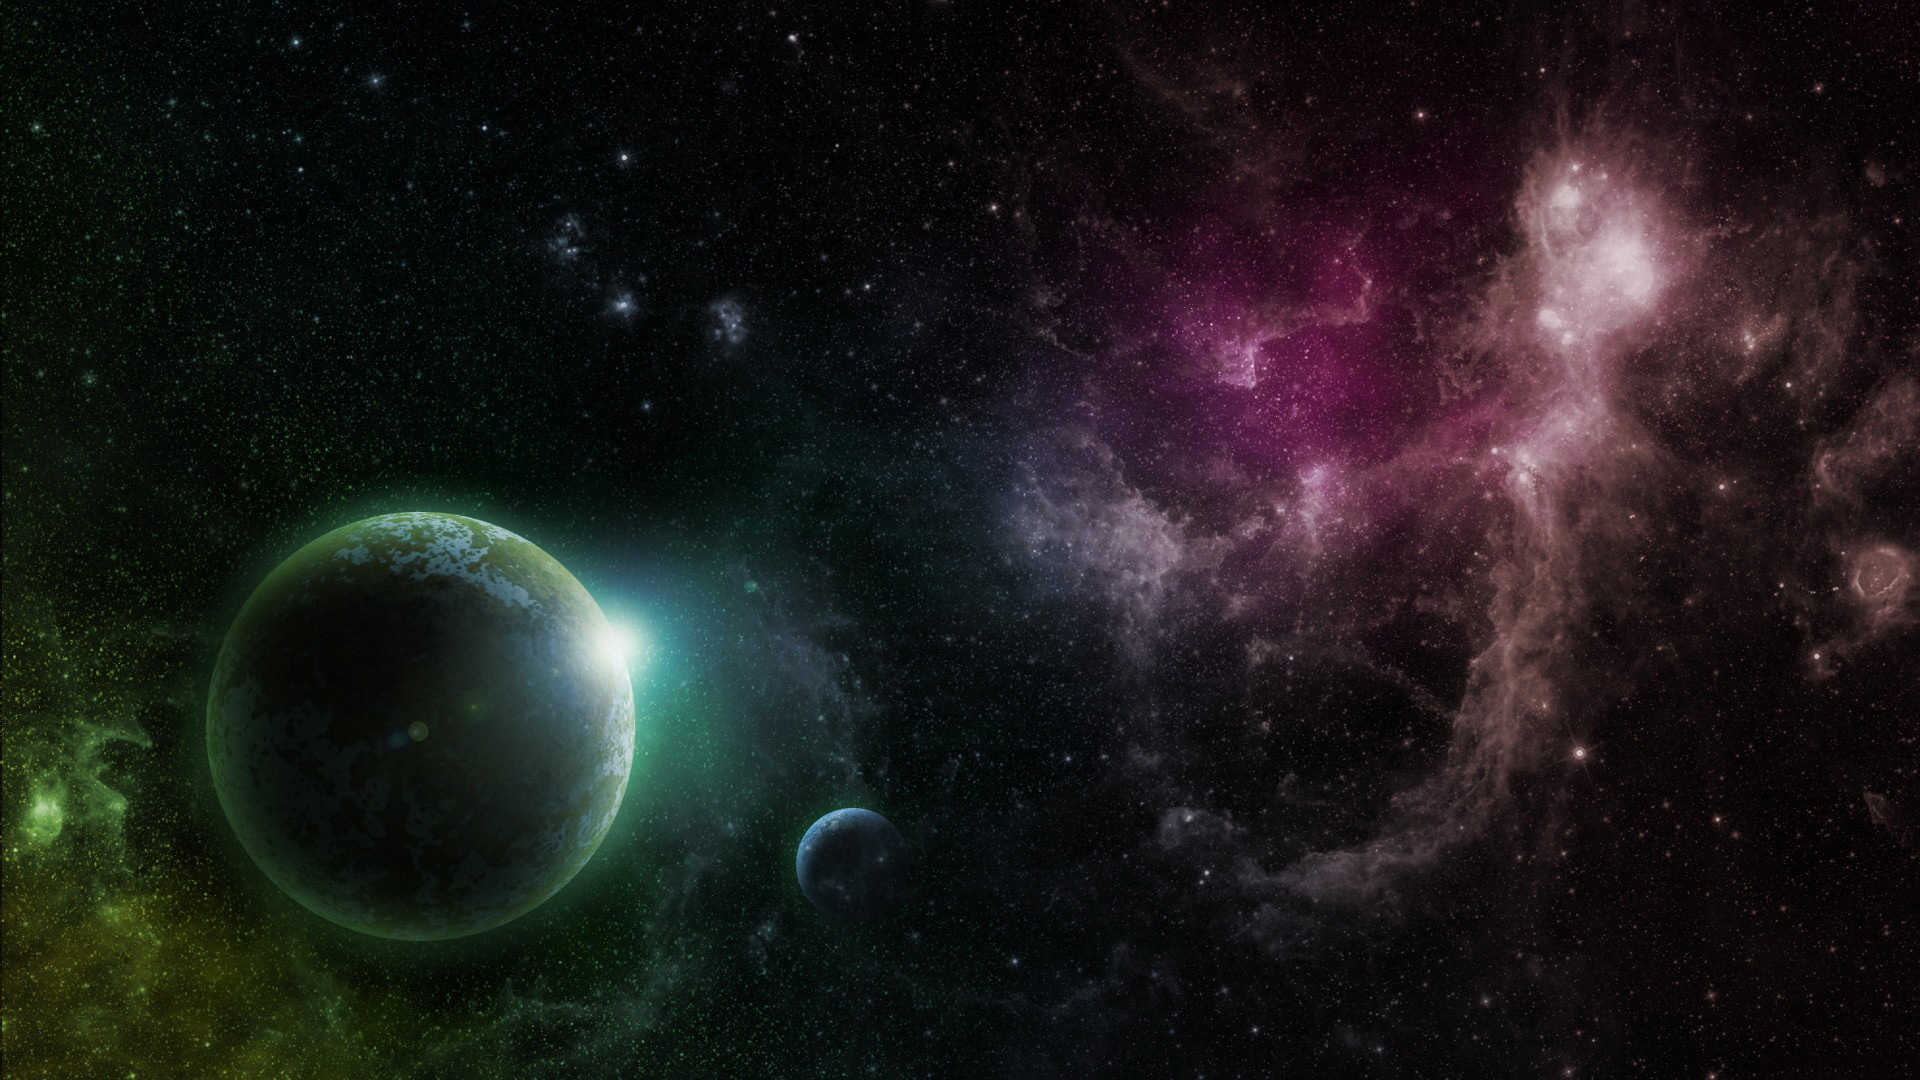 Space Images Digital Planets HD Wallpaper And Background Photos